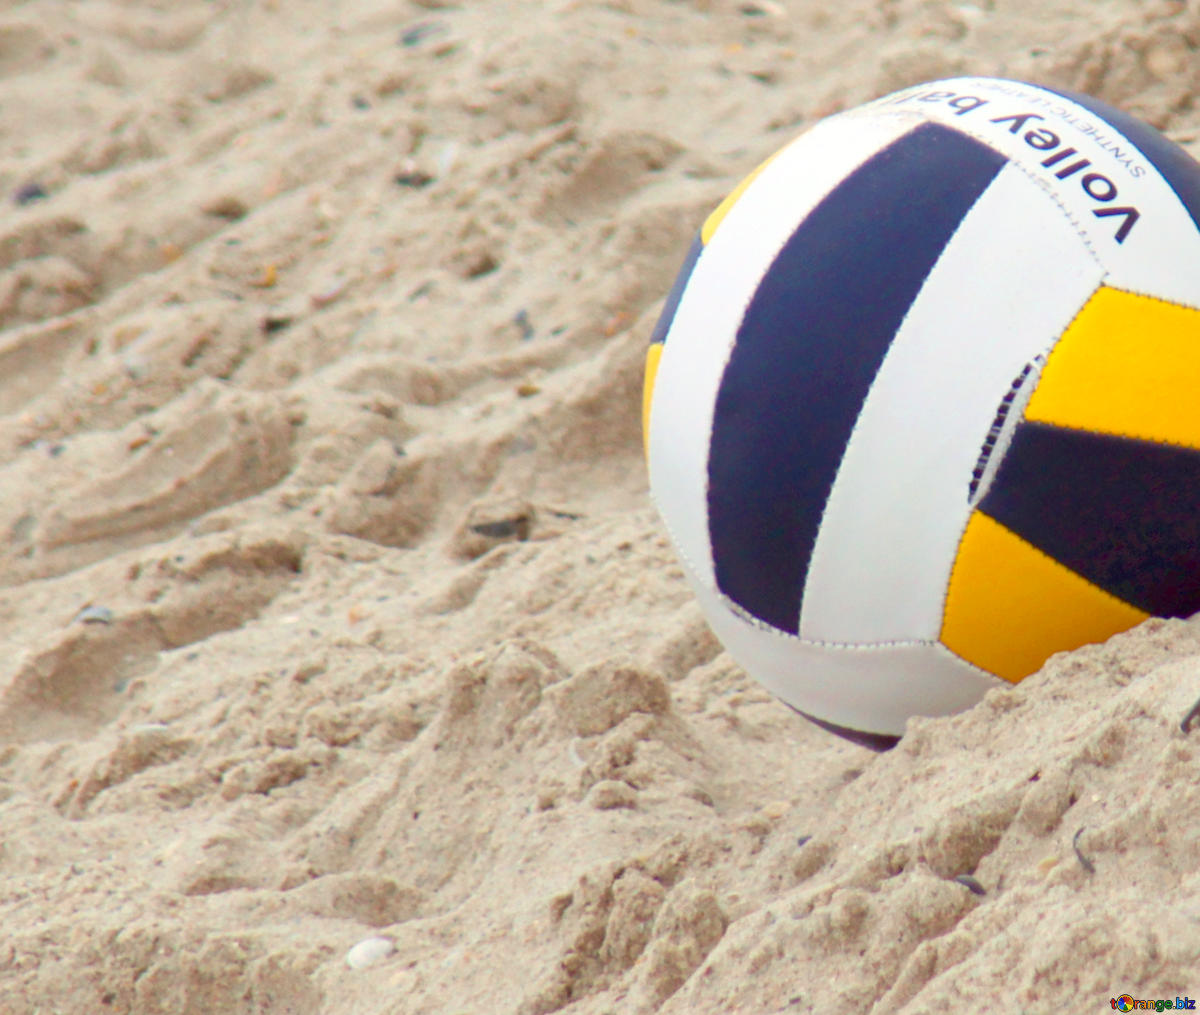 Free picture (Image for profile picture Beach Volleyball.) from https://torange.biz/fx/image-profile-picture-beach-volleyball-17696